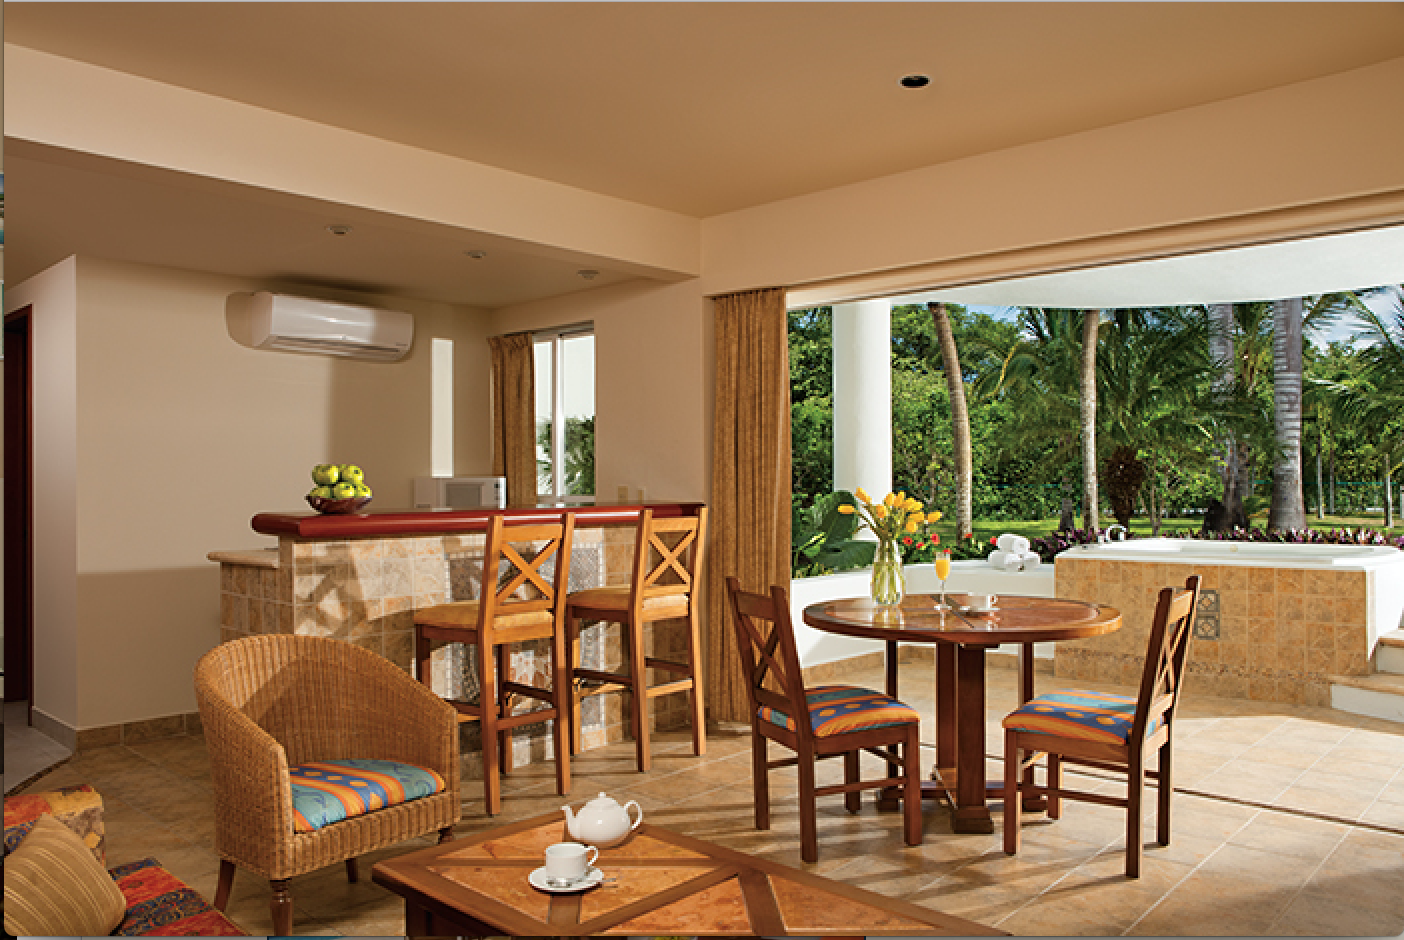 Junior Suite Tropical View living room area at Sunscape ... on Sunscape Outdoor Living id=48795